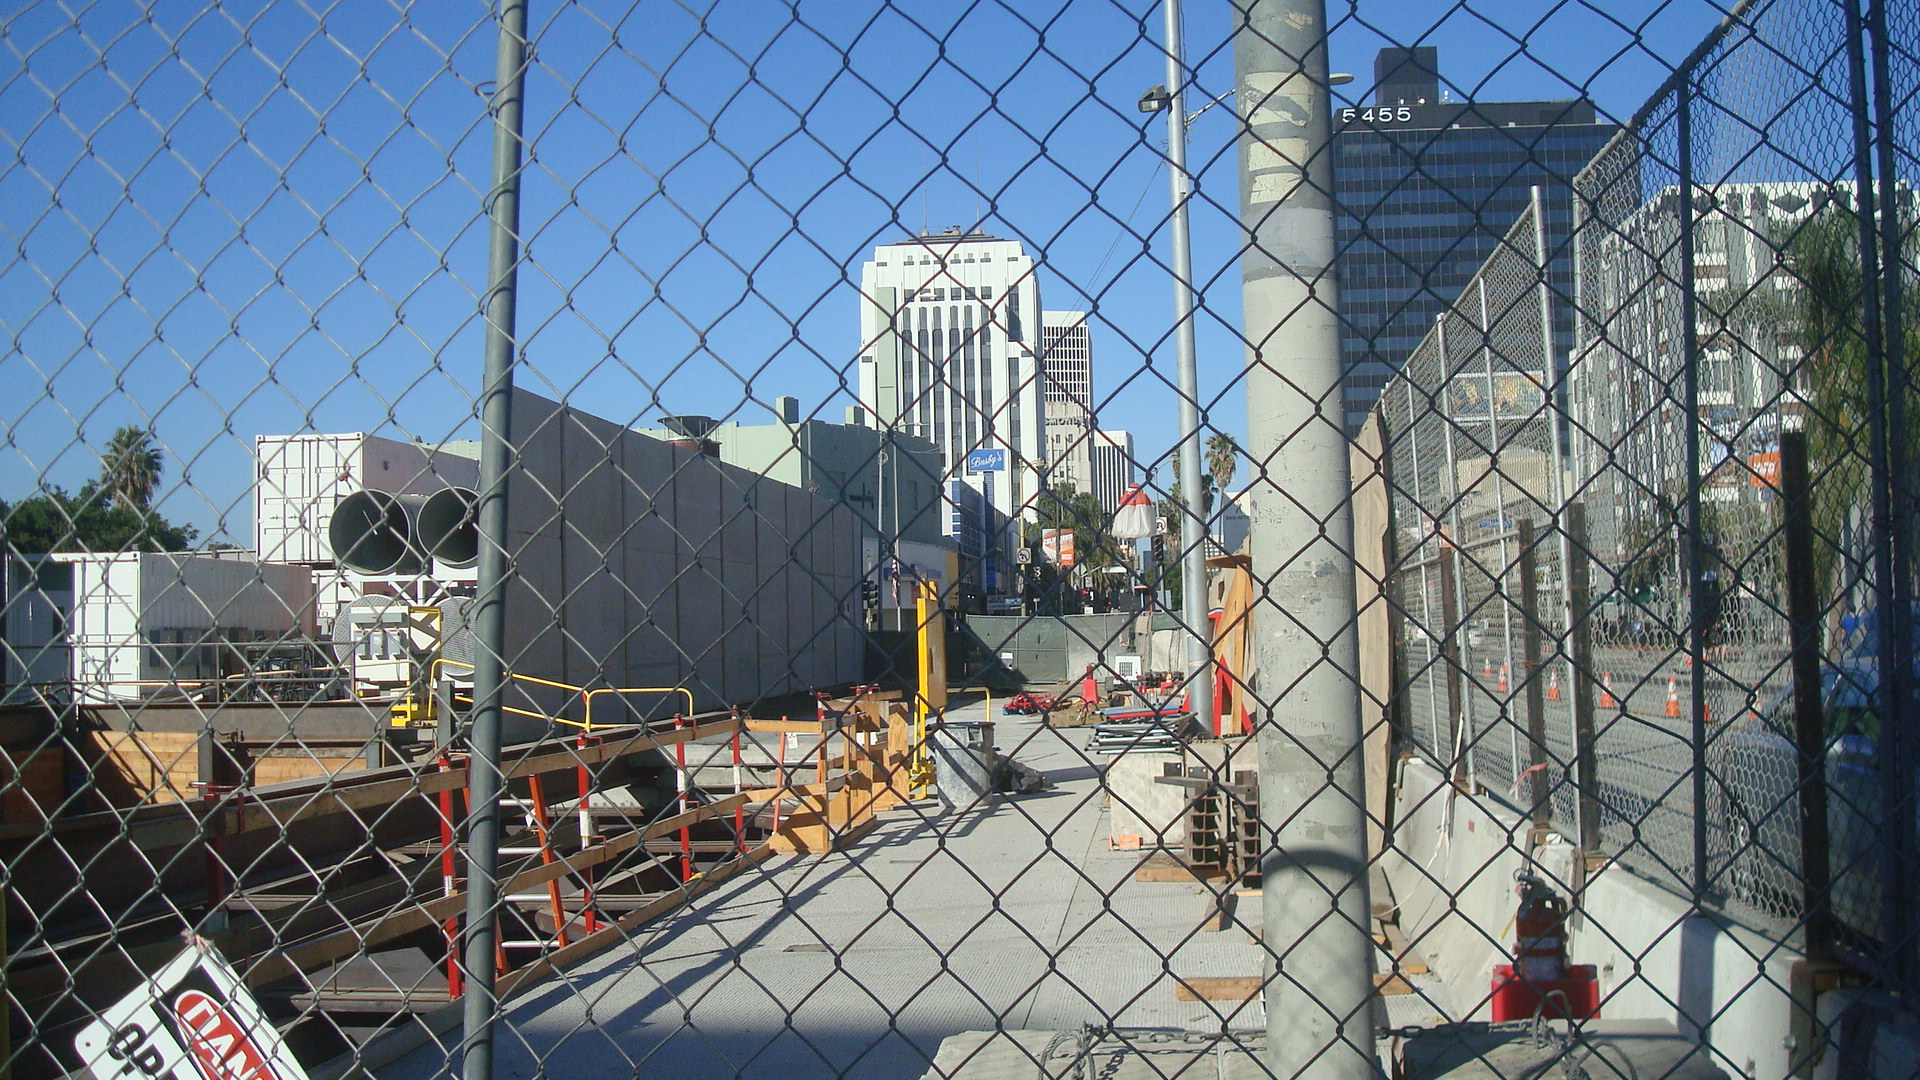 Another shot of construction at Wilshire and La Brea.